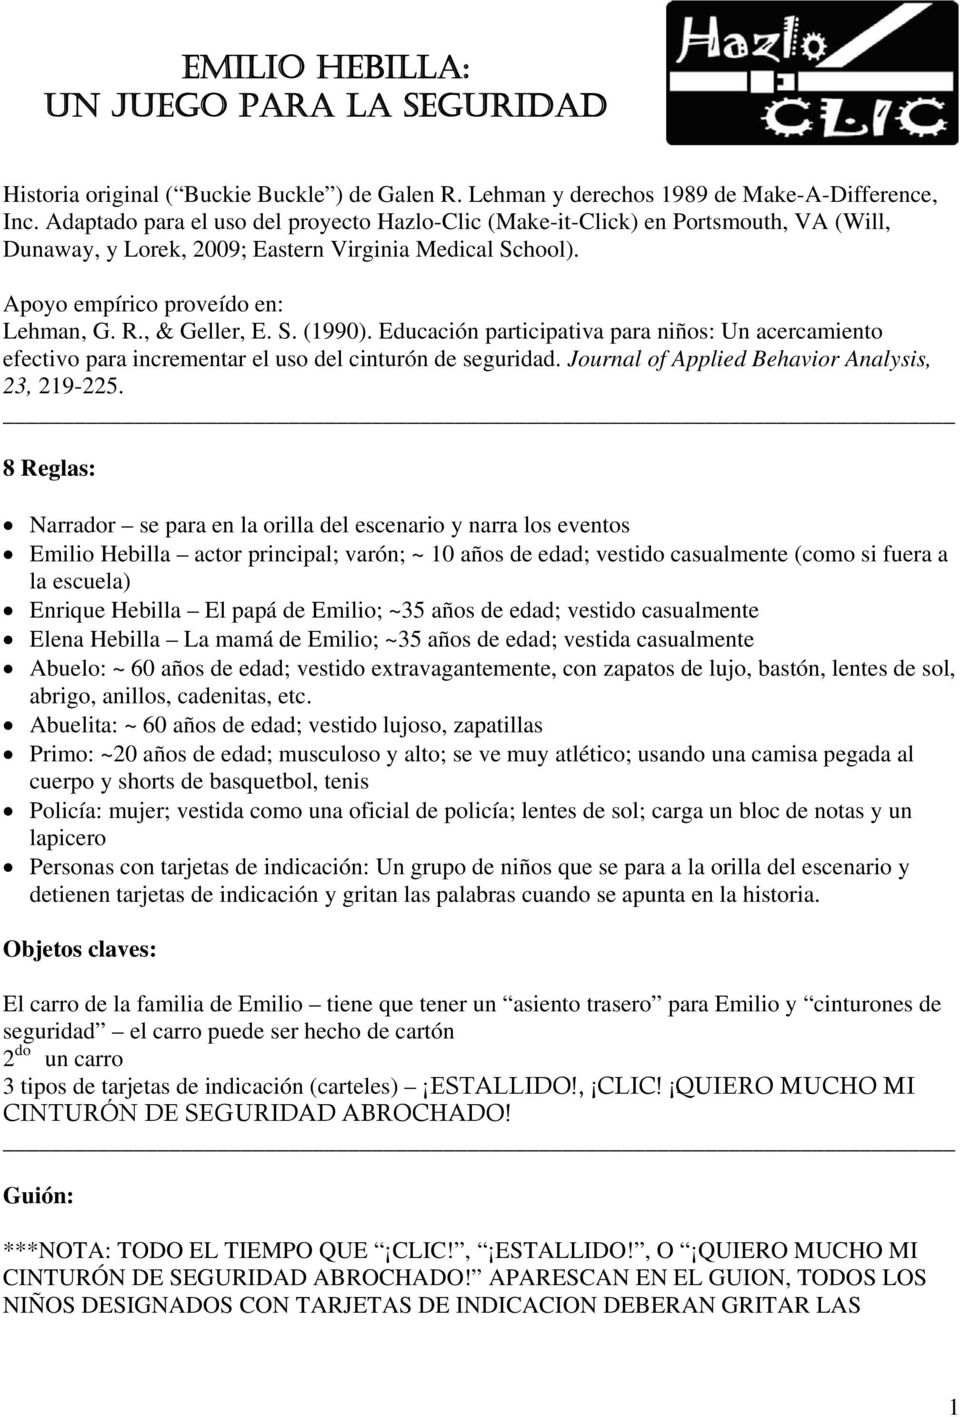 S. (1990). Educación participativa para niños: Un acercamiento efectivo para incrementar el uso del cinturón de seguridad. Journal of Applied Behavior Analysis, 23, 219-225.